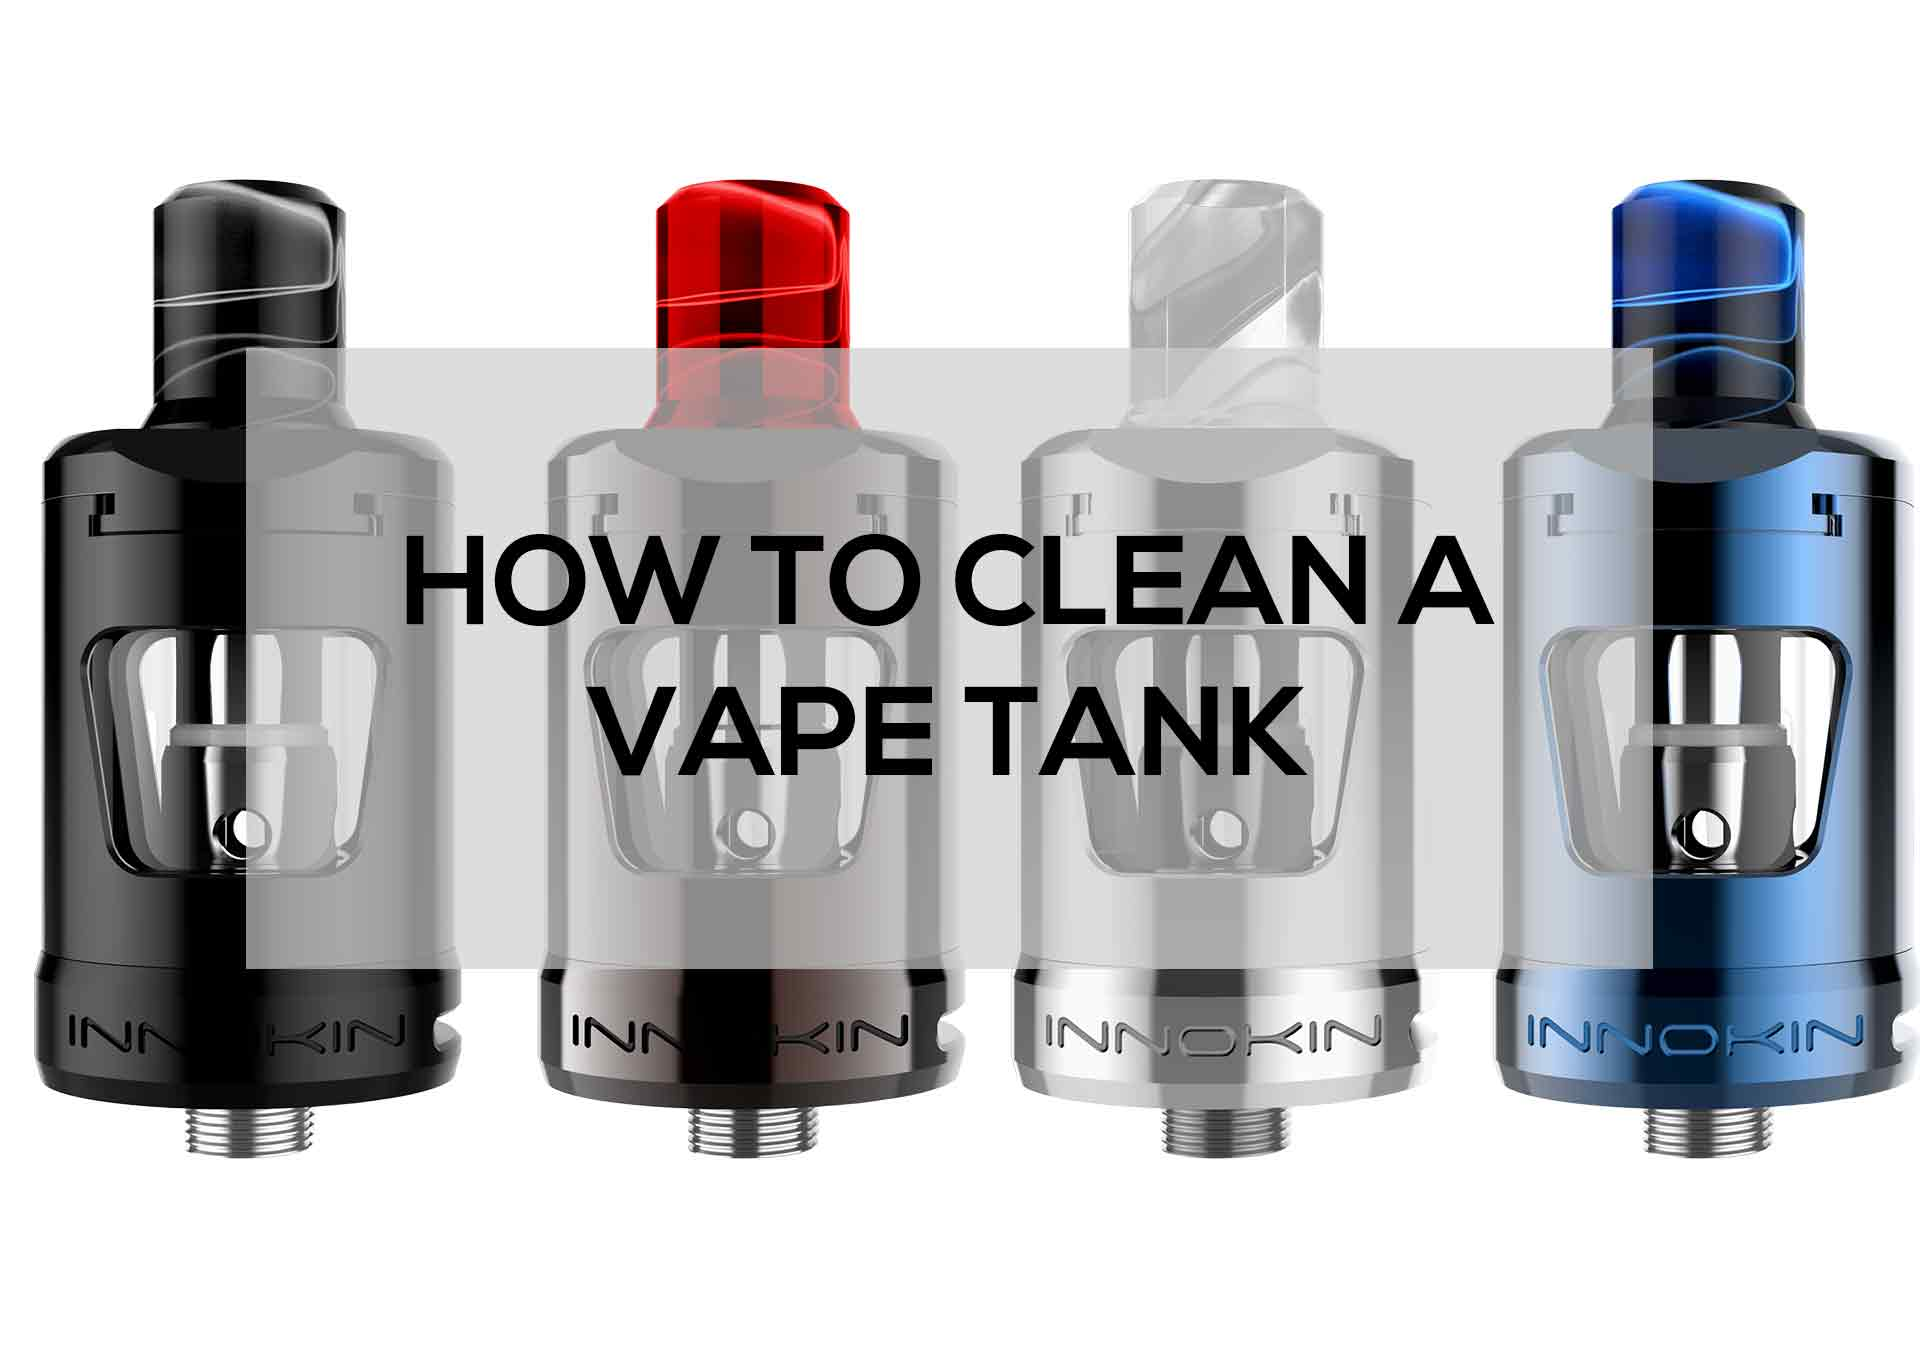 How-to-Clean-a-Vape-Tank